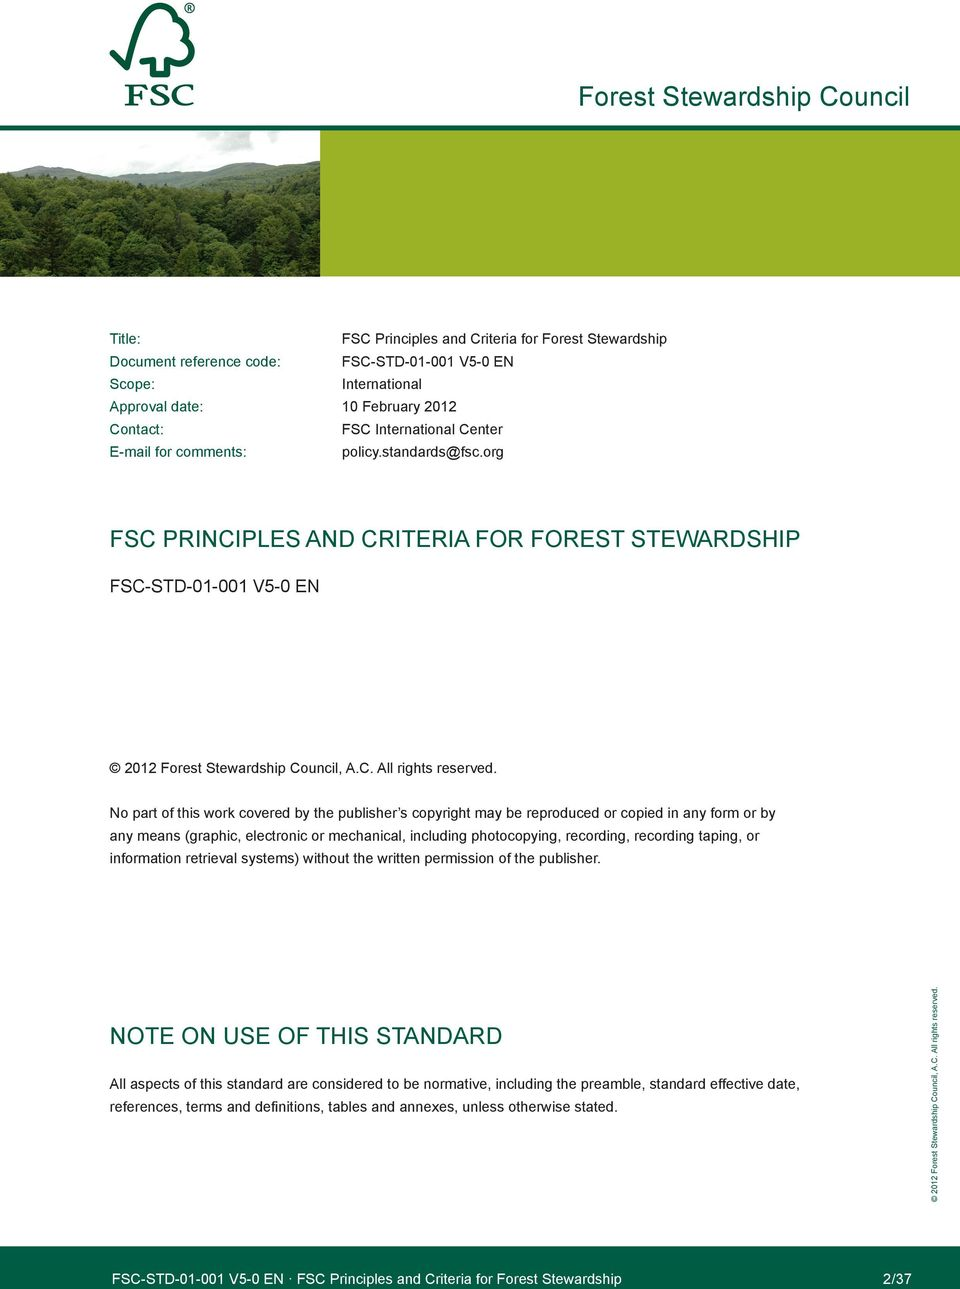 org FSC PrInCIPleS and CrIterIa For ForeSt SteWardSHIP FSC-Std-01-001 V5-0 en no part of this work covered by the publisher s copyright may be reproduced or copied in any form or by any means